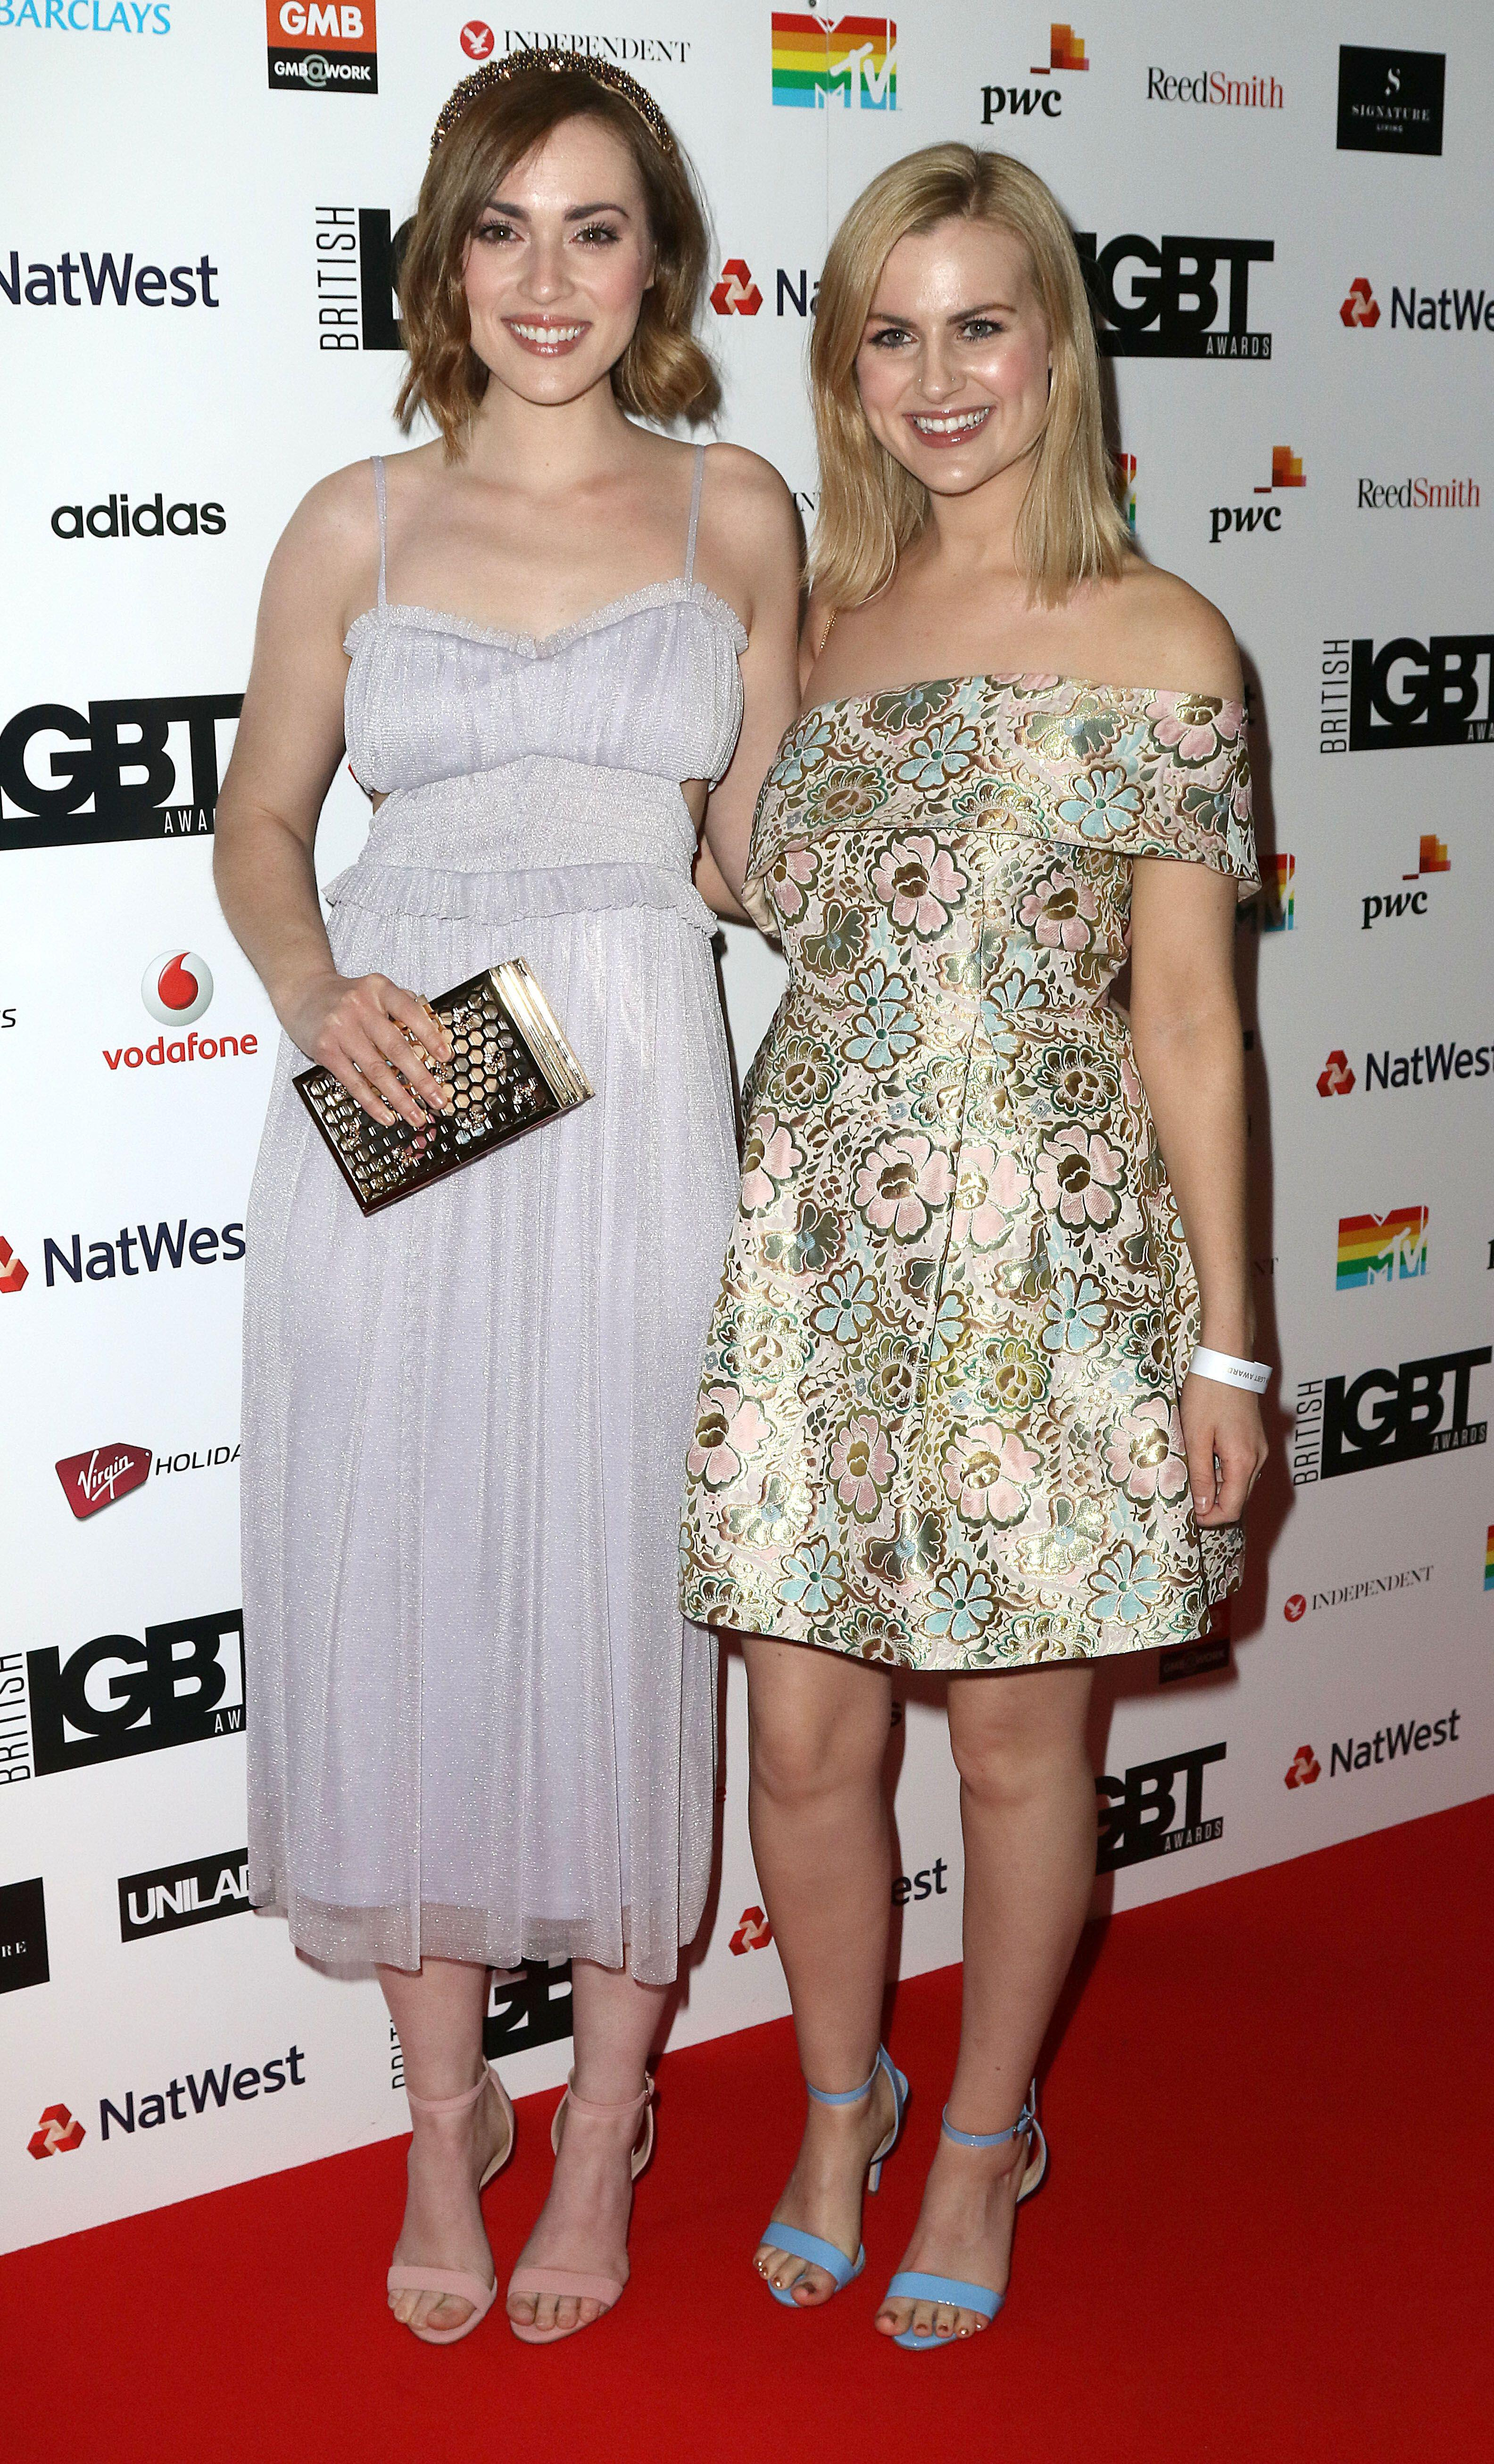 Rose and Rosie at the 2017 British LGBT Awards